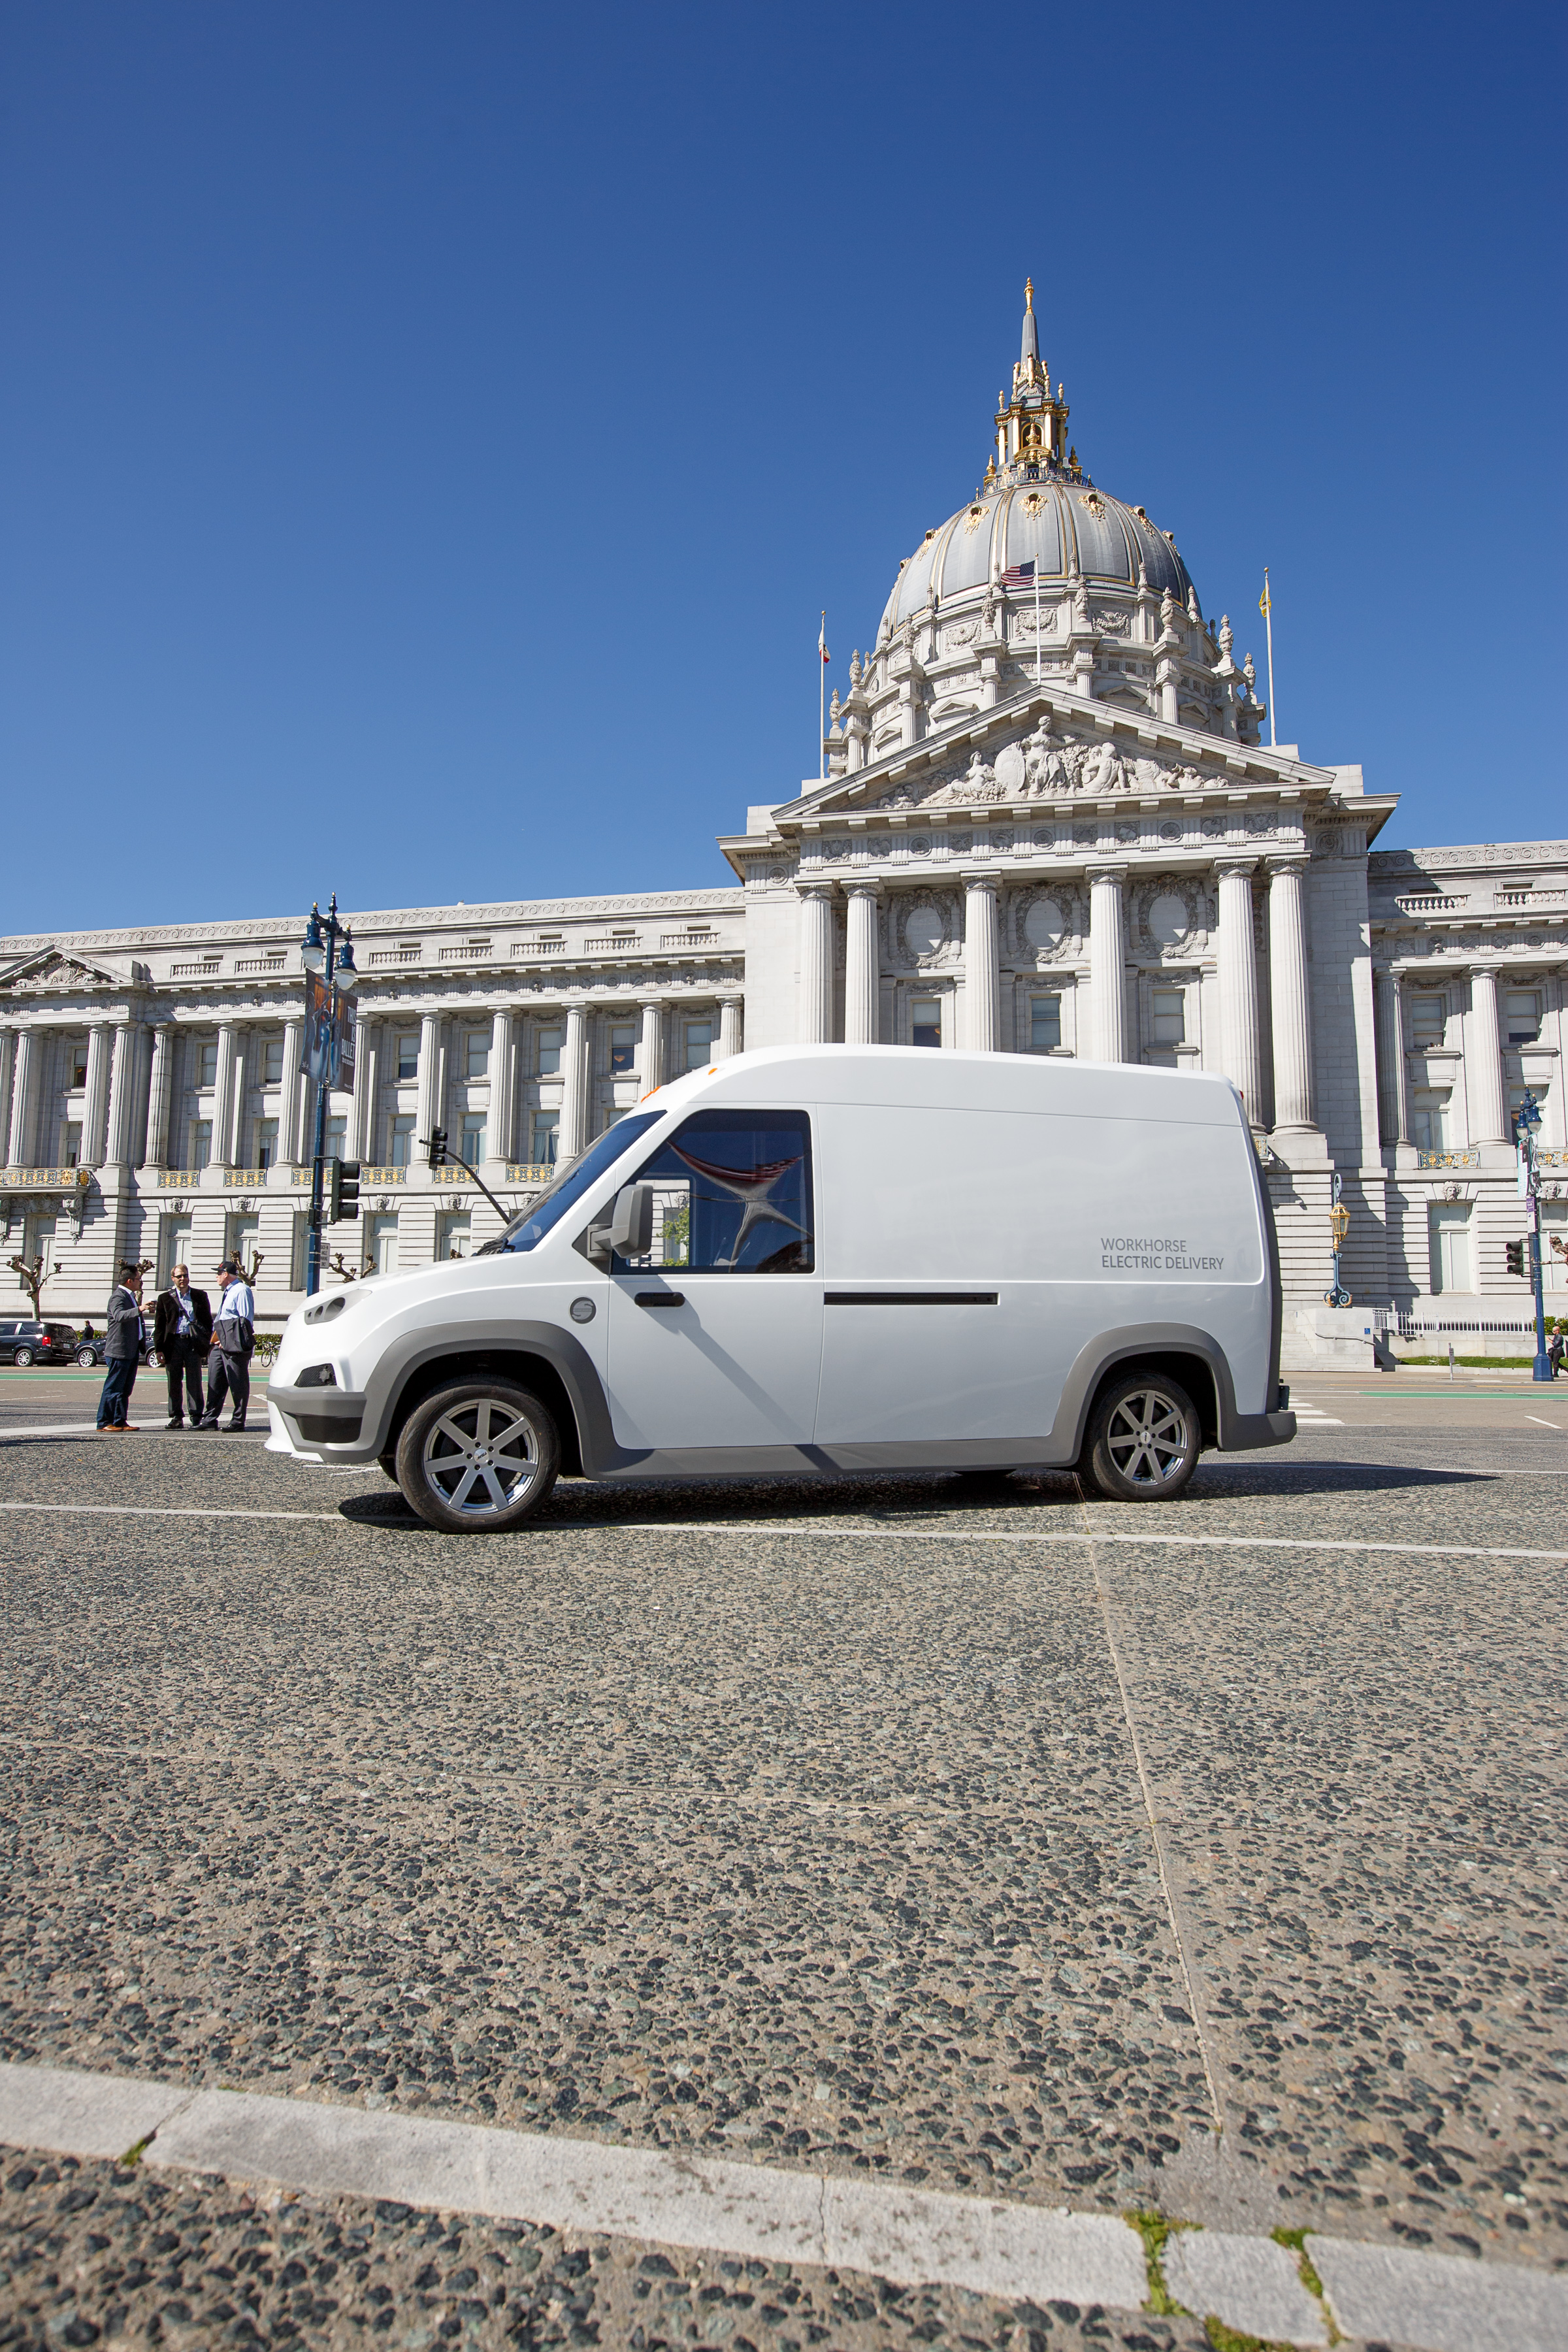 dc0e3ac554 Workhorse says that the new N-Gen electric van has a range of 100 miles  (160 km) on a single charge